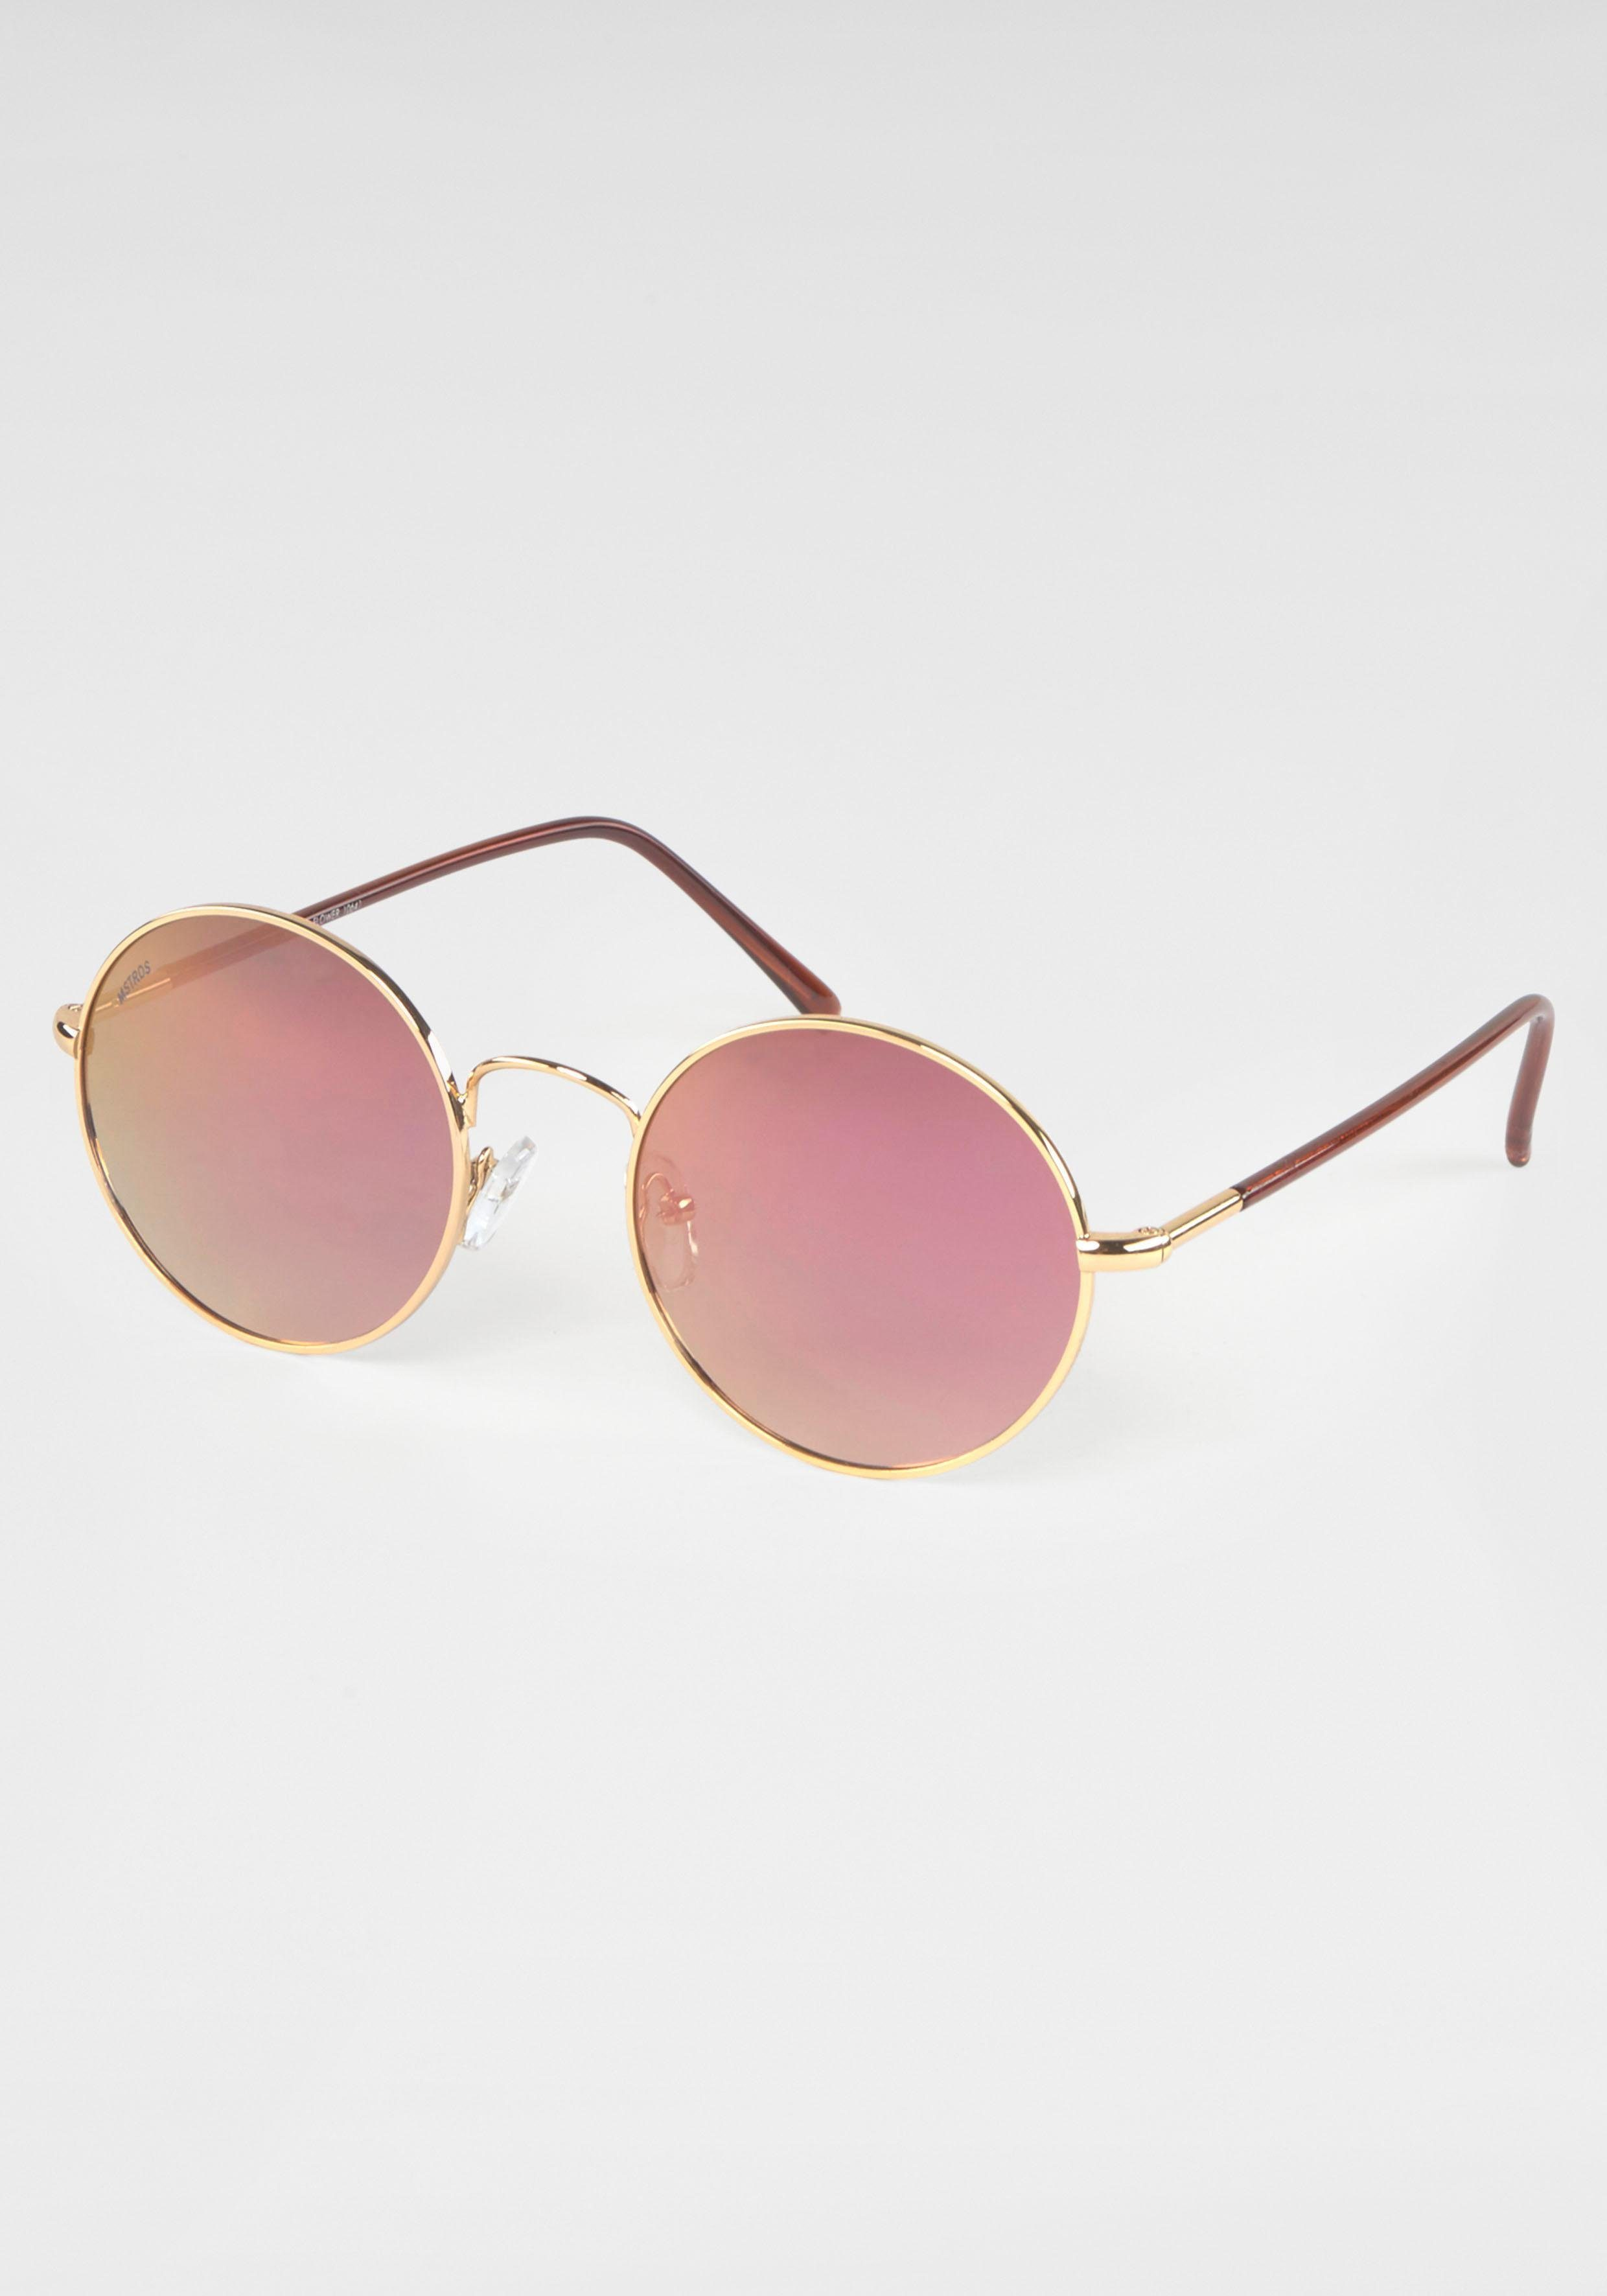 MSTRDS Retrosonnenbrille (1-St) Circular, Hippie Look, Sixties Style